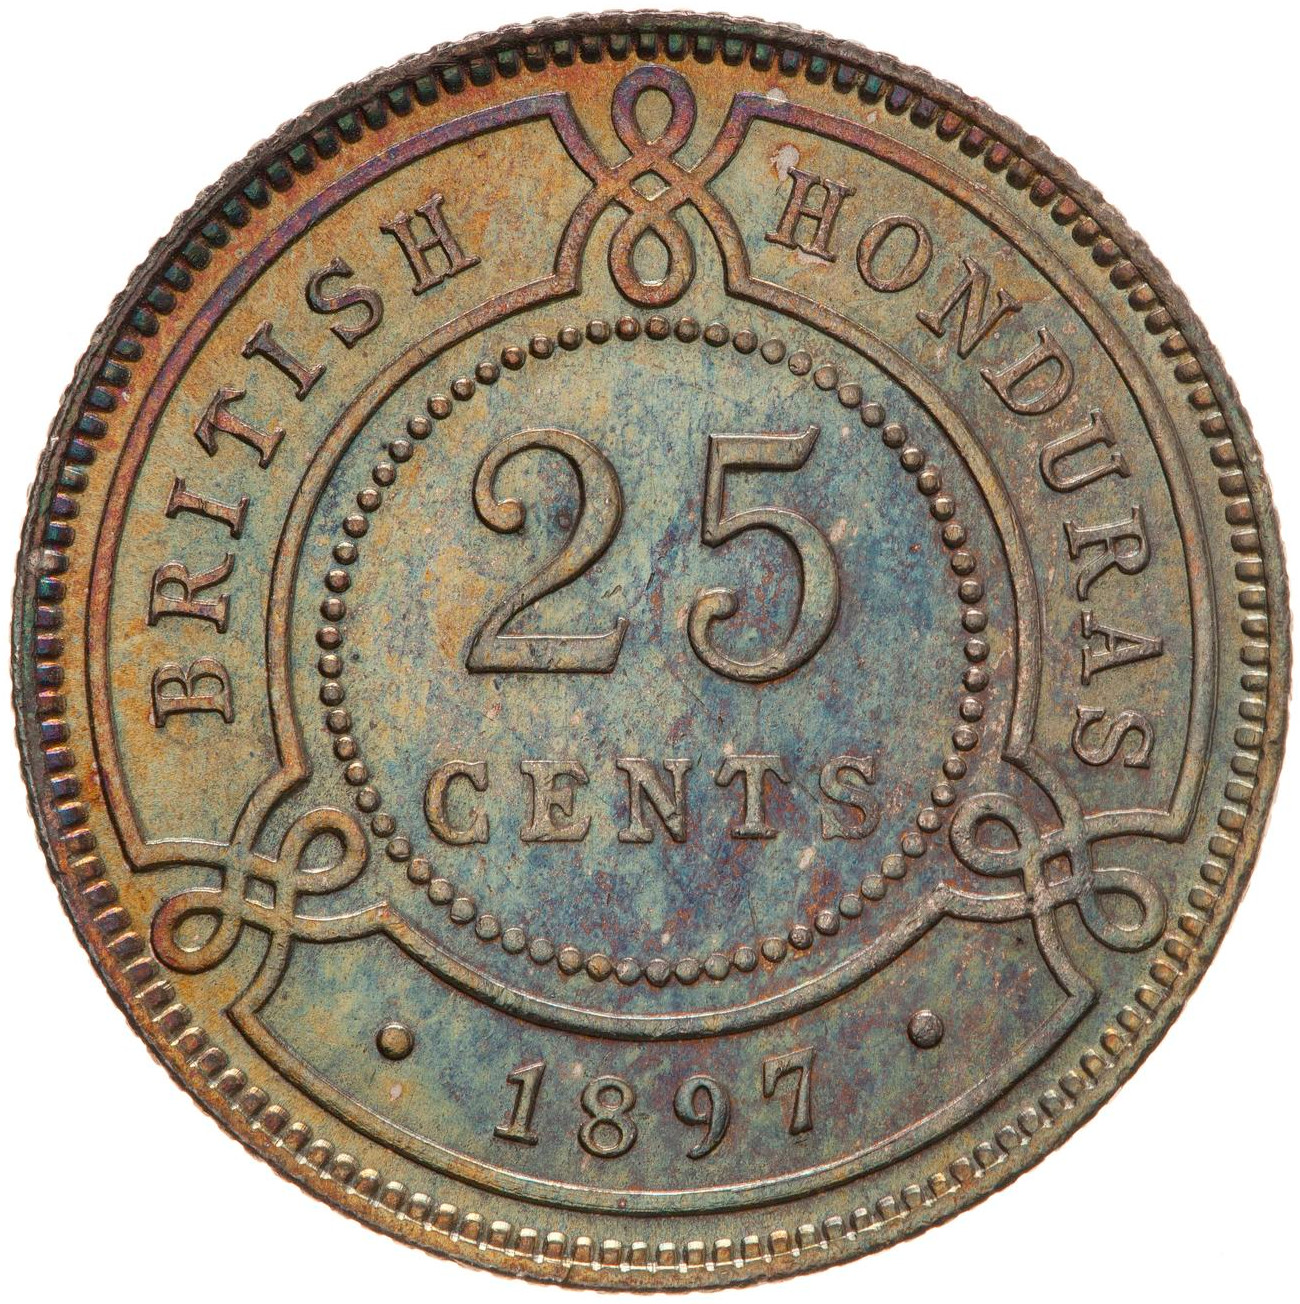 Twenty Five Cents 1897: Photo Coin - 25 Cents, British Honduras (Belize), 1897